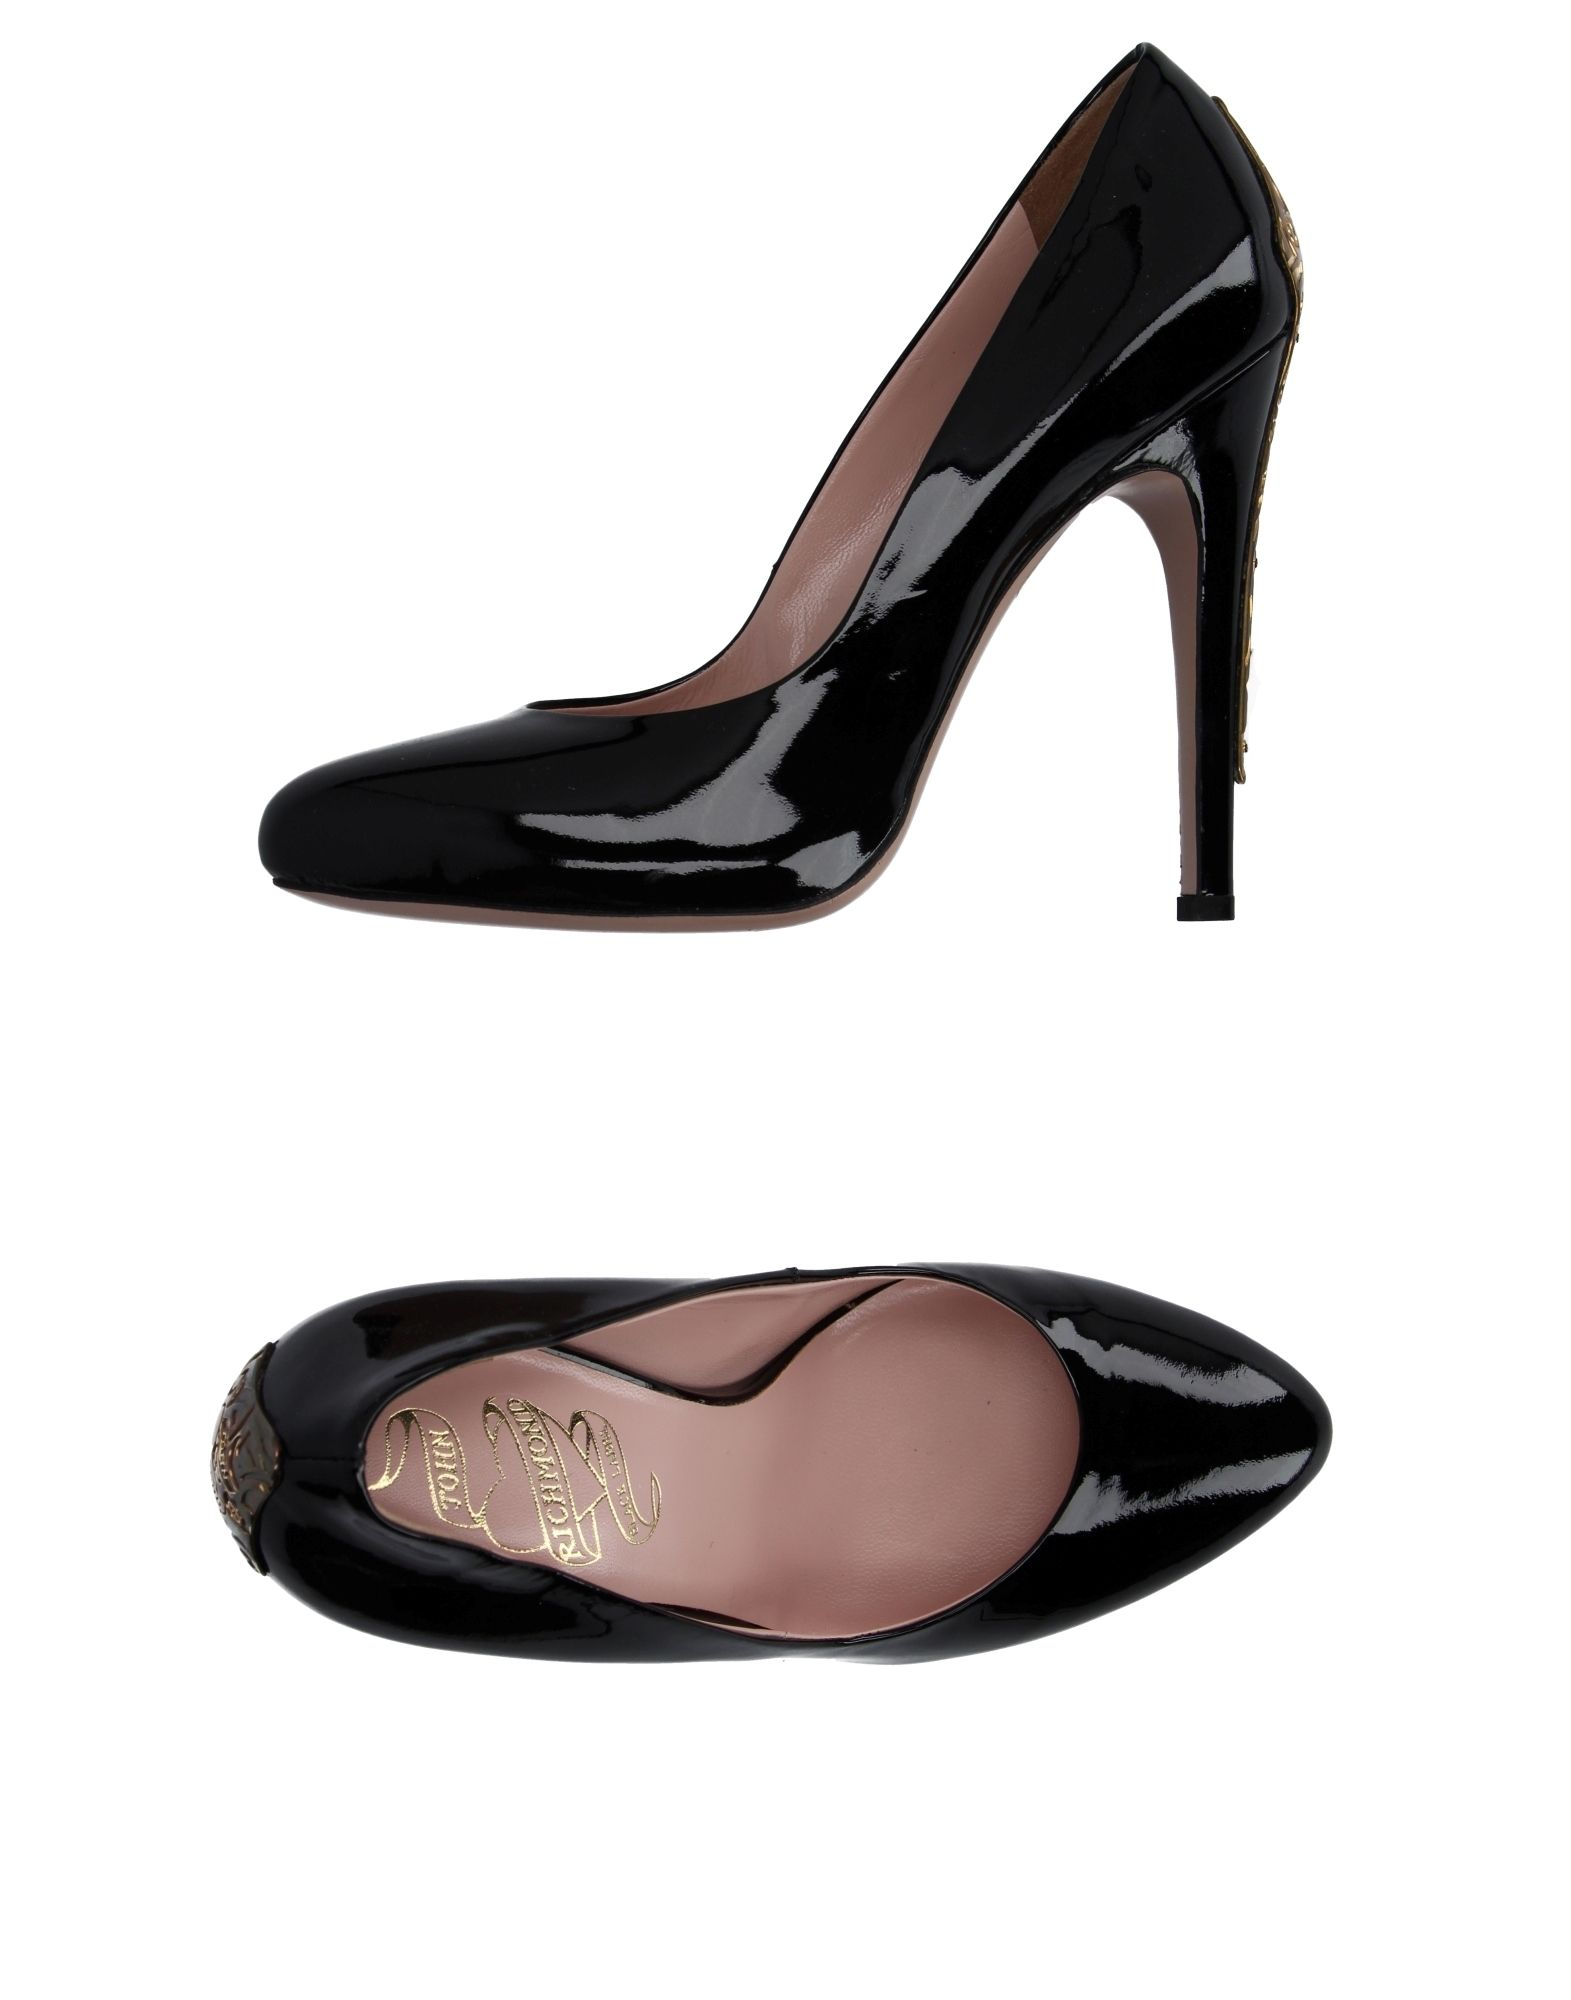 Escarpins John Richmond Black Label Femme - Escarpins John Richmond Black Label sur